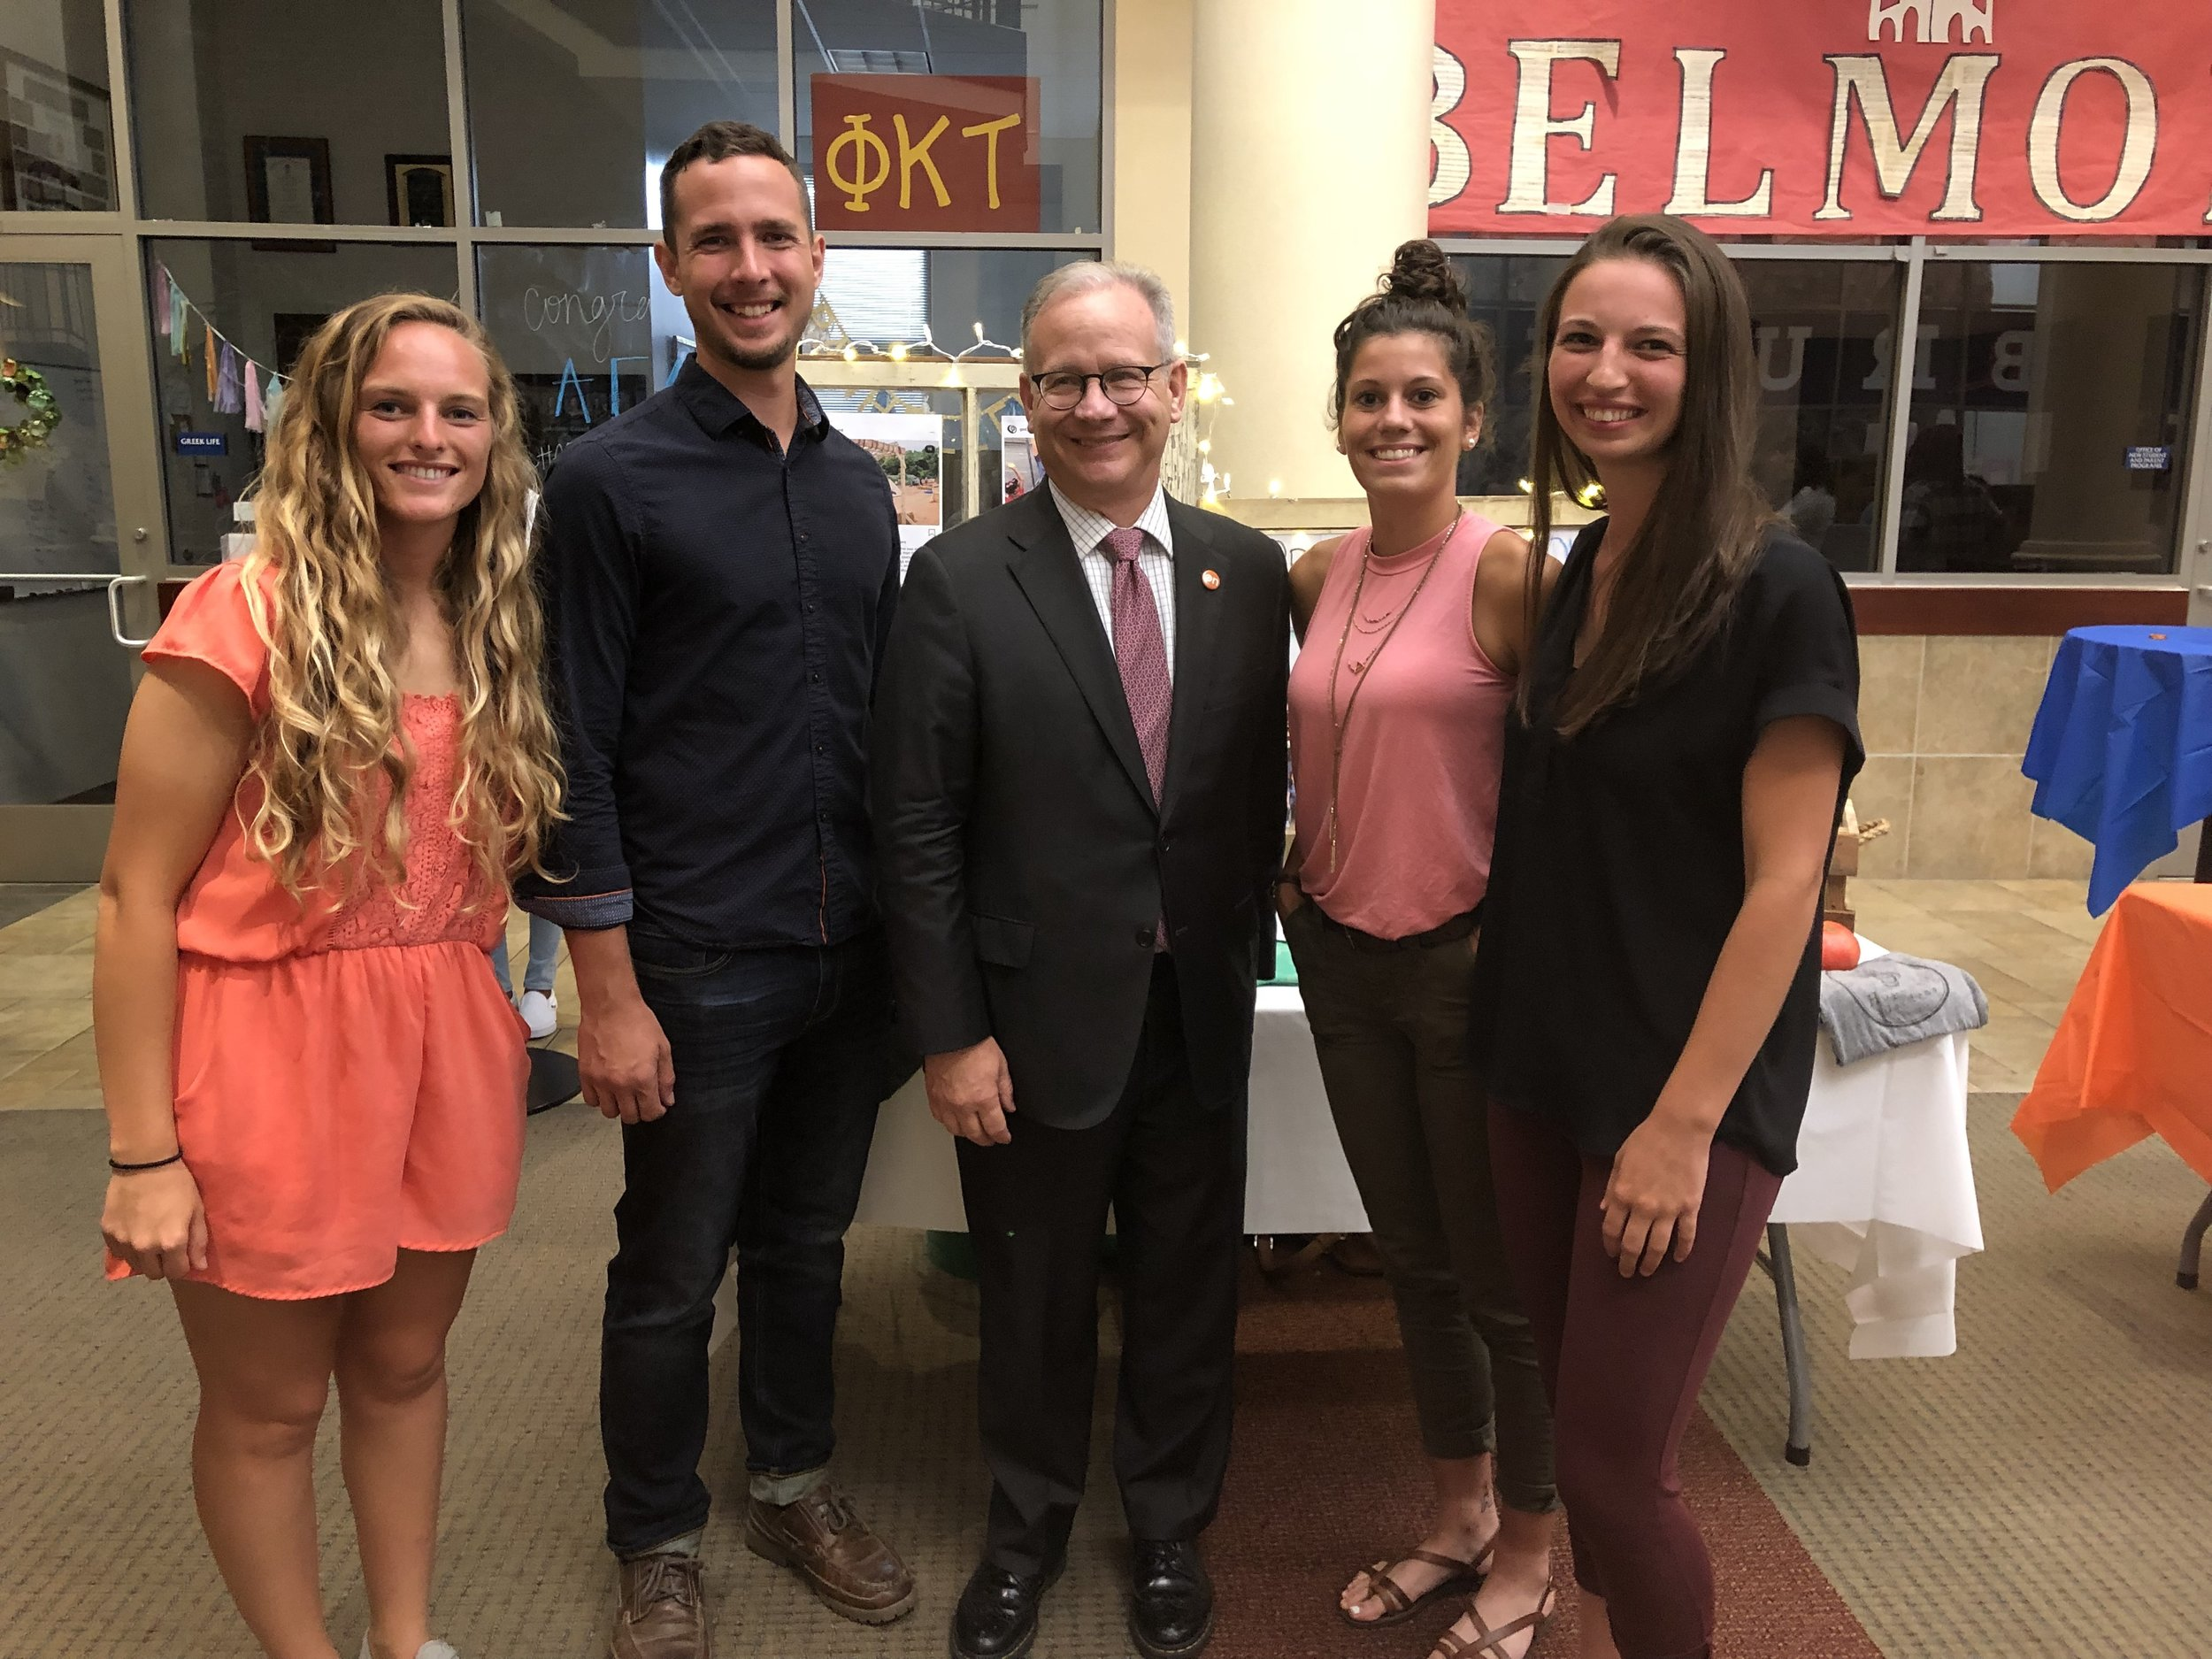 Our near peer WorkWell leaders were pleased to introduce Nashville Mayor Briley to our program at the Opportunity Now end of summer bash.